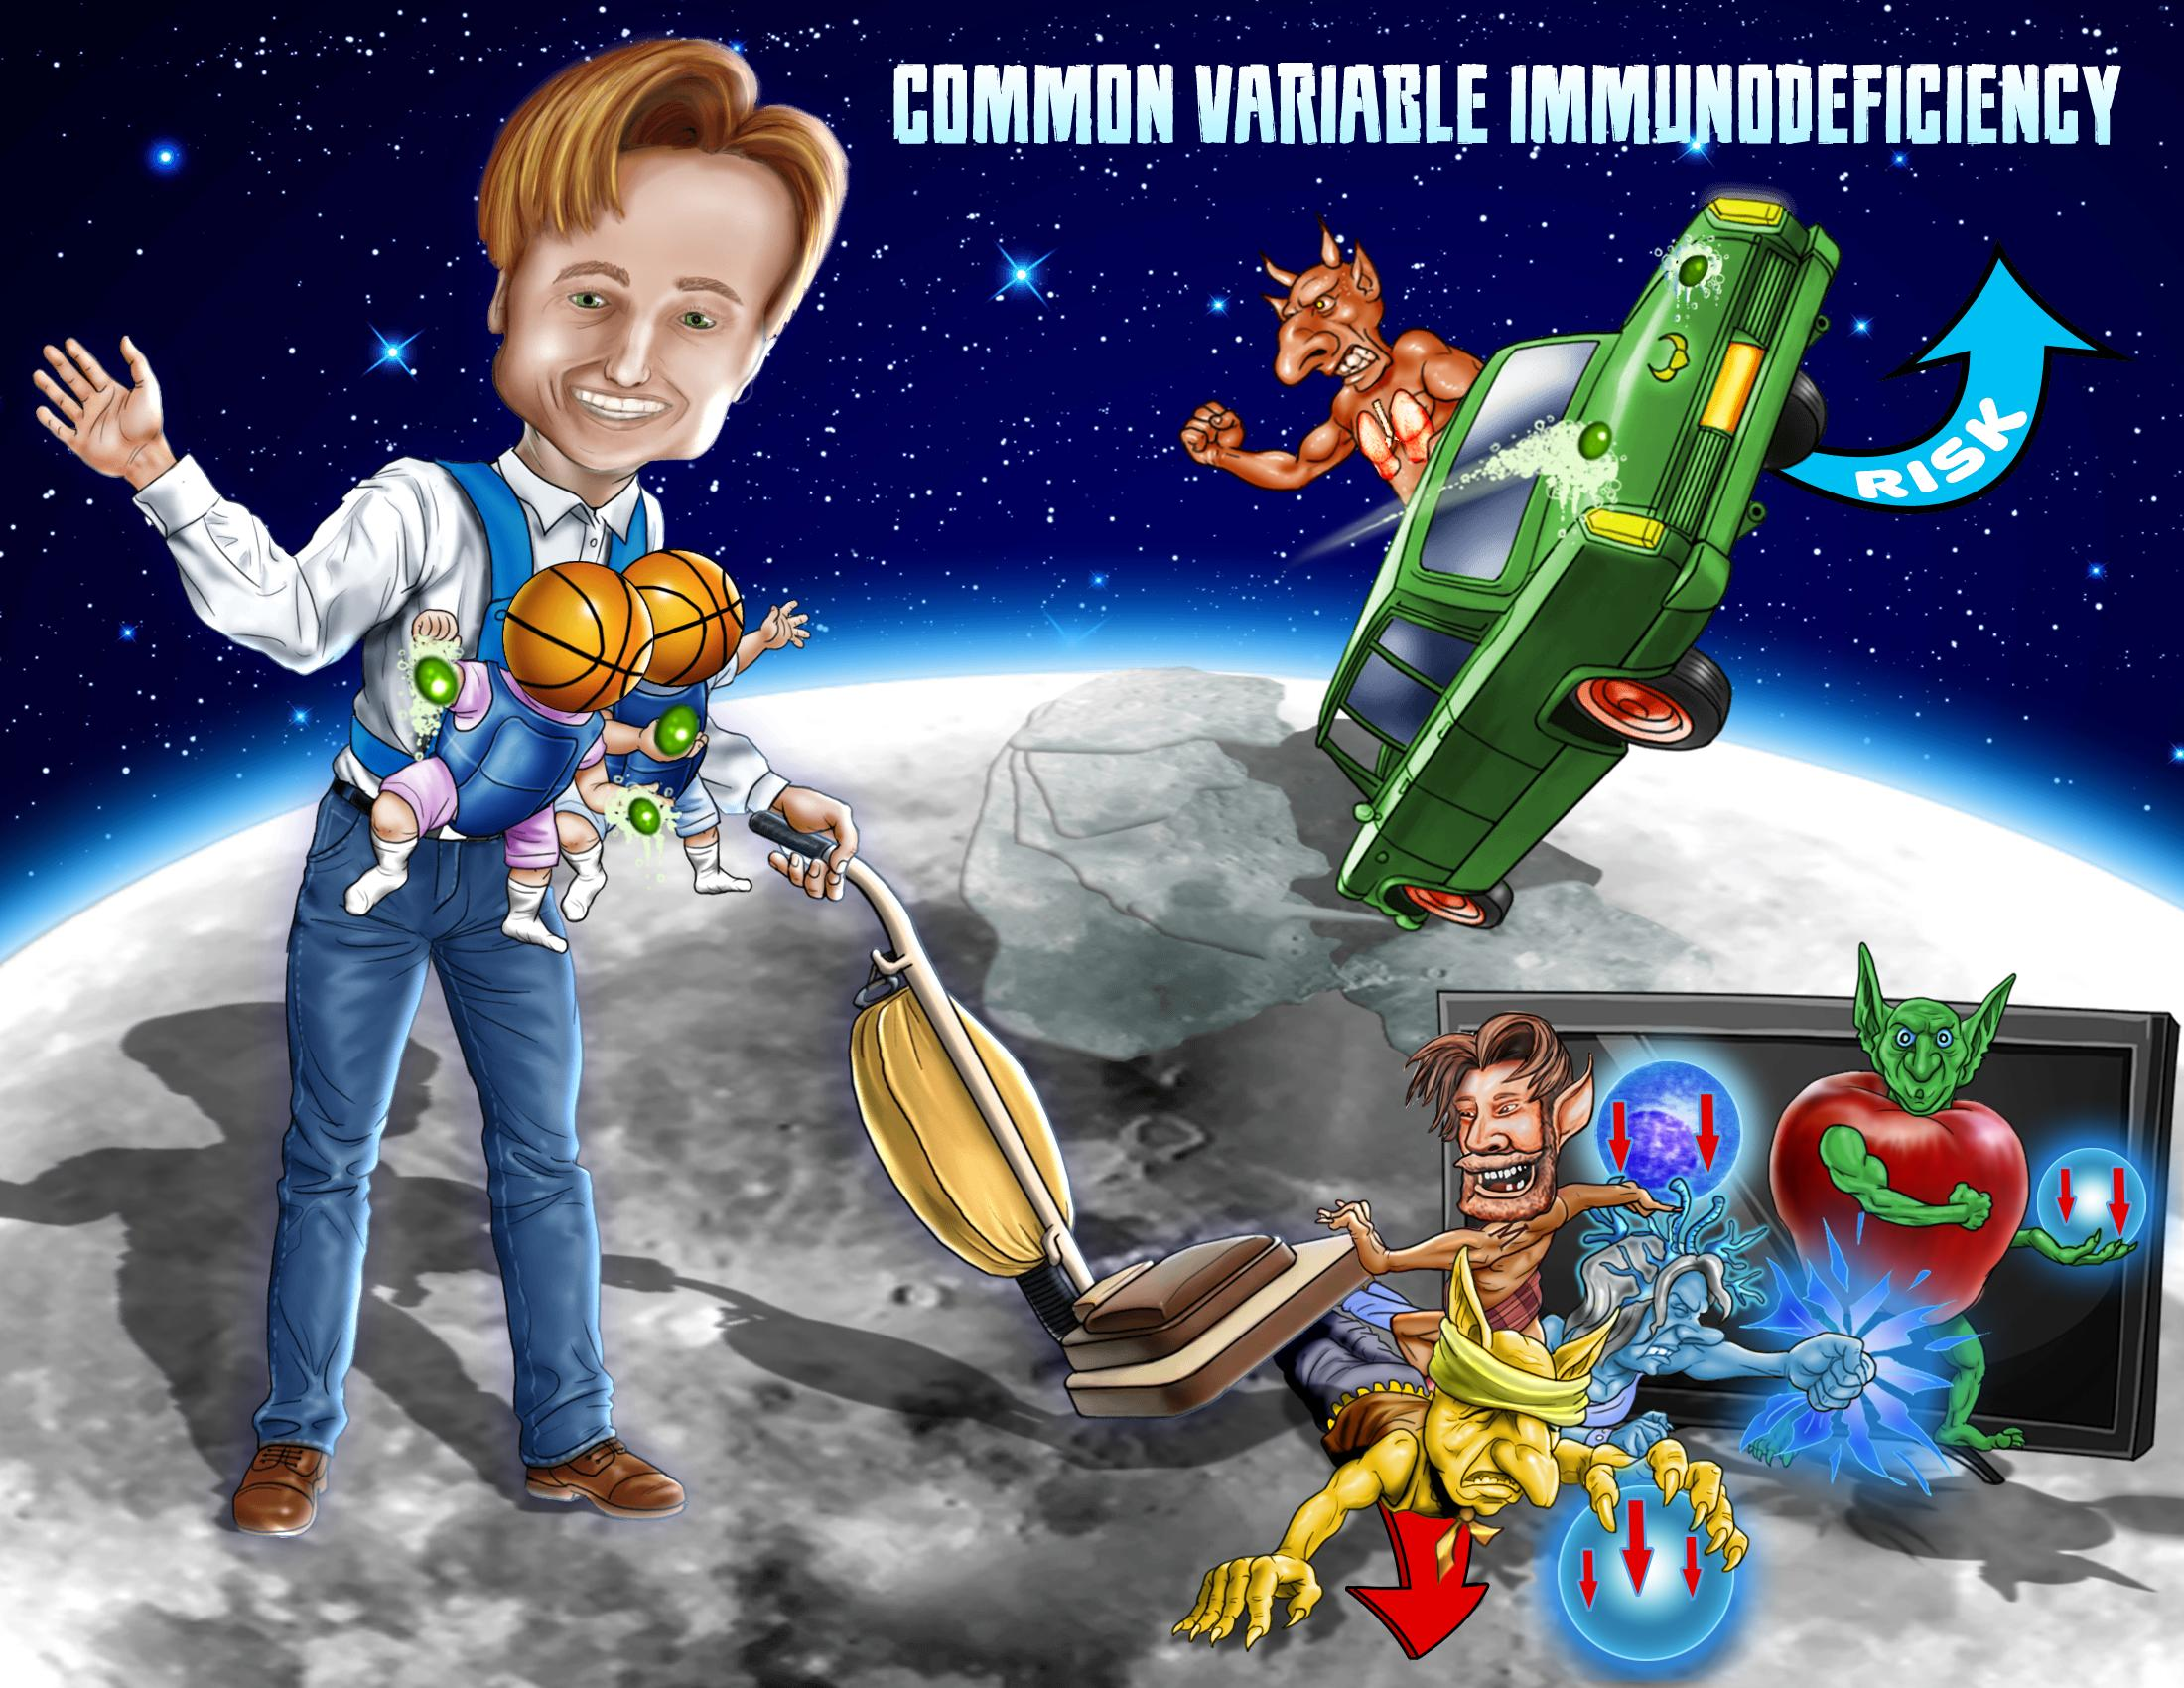 Common Variable Immunodeficiency